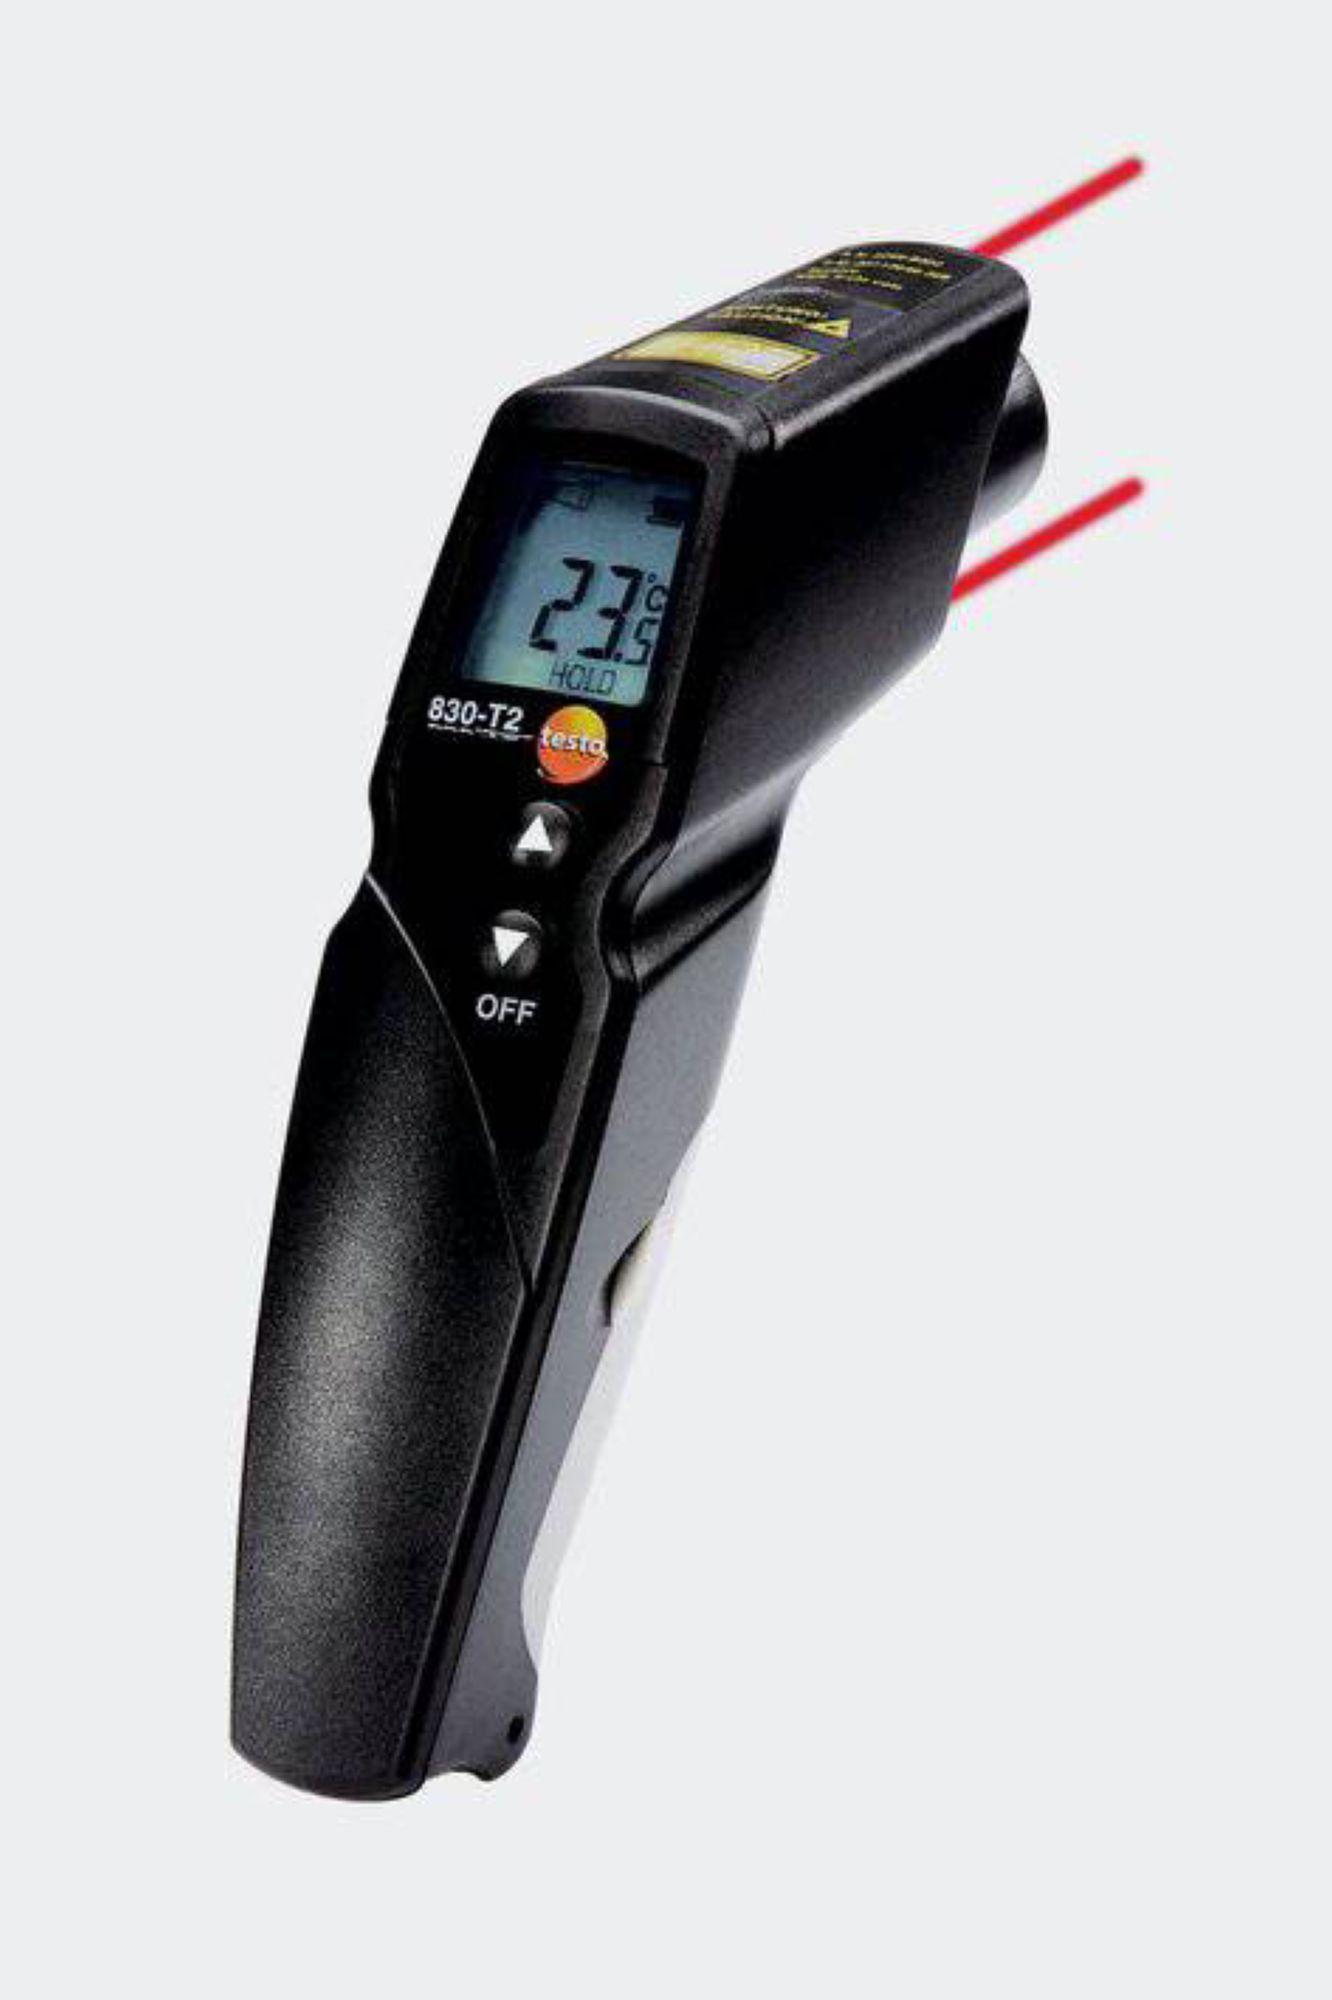 Infrared thermometer testo 830-T2